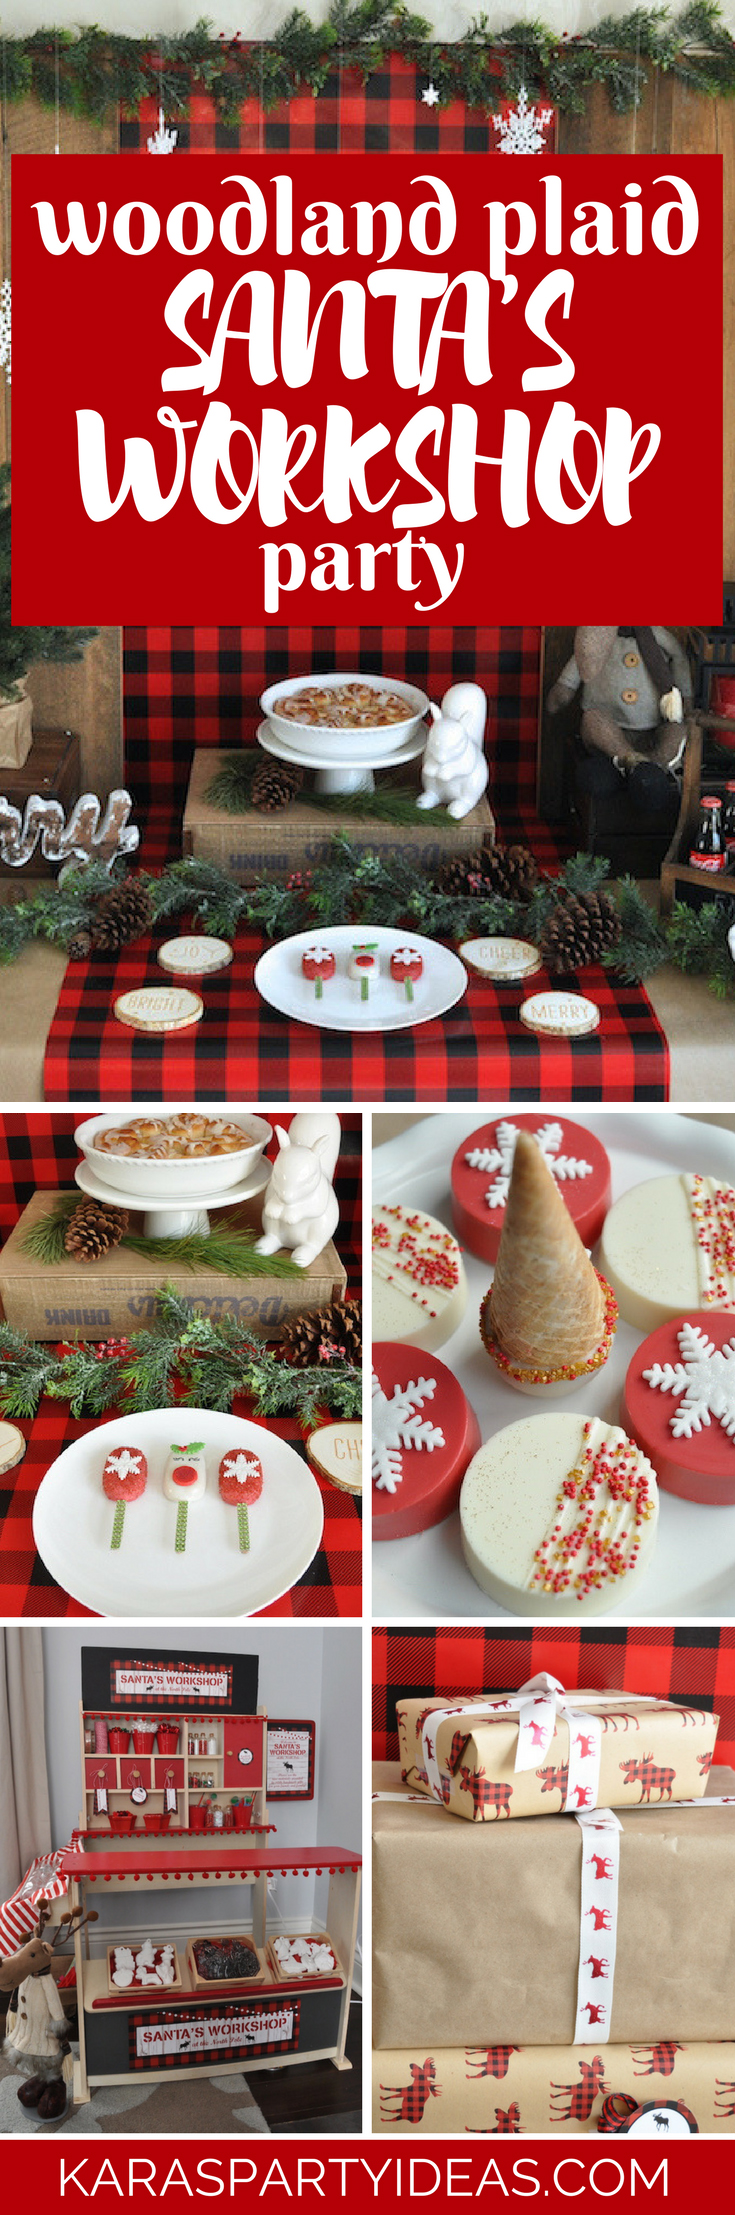 Woodland Plaid Santas Workshop Party via Kara's Party Ideas - KarasPartyIdeas.com